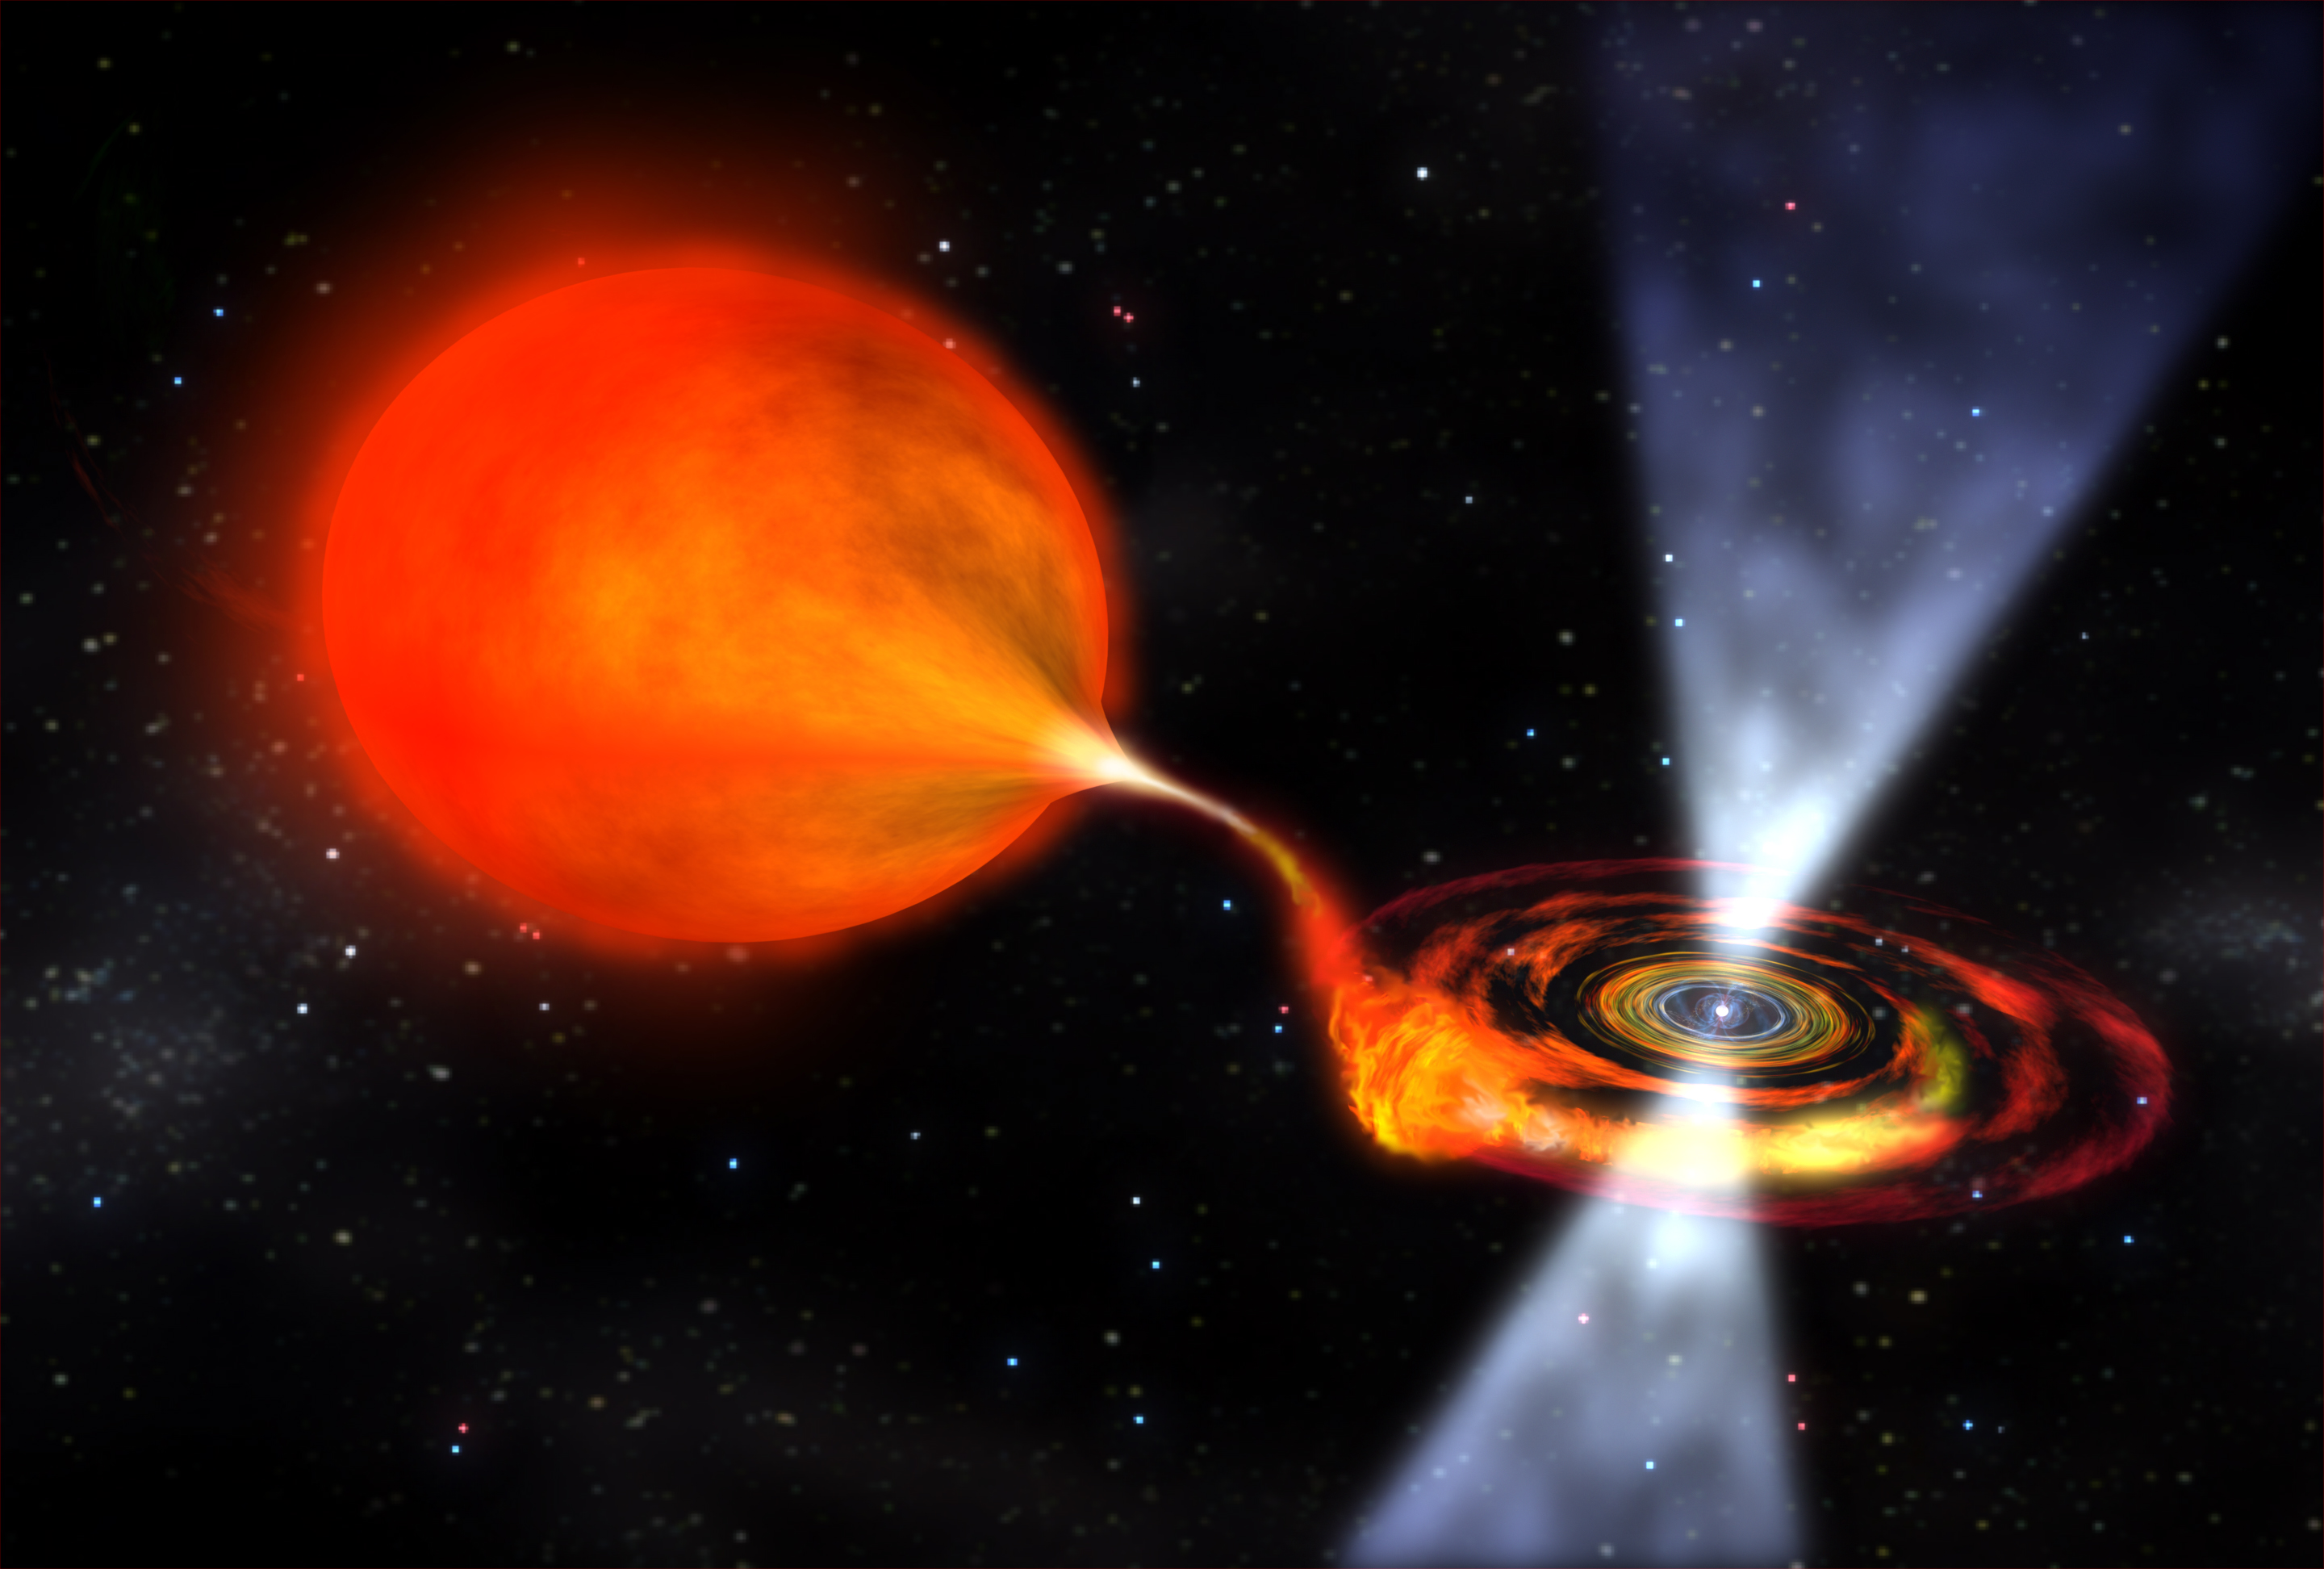 Aссretion Spins Pulsar to Millisecond Range